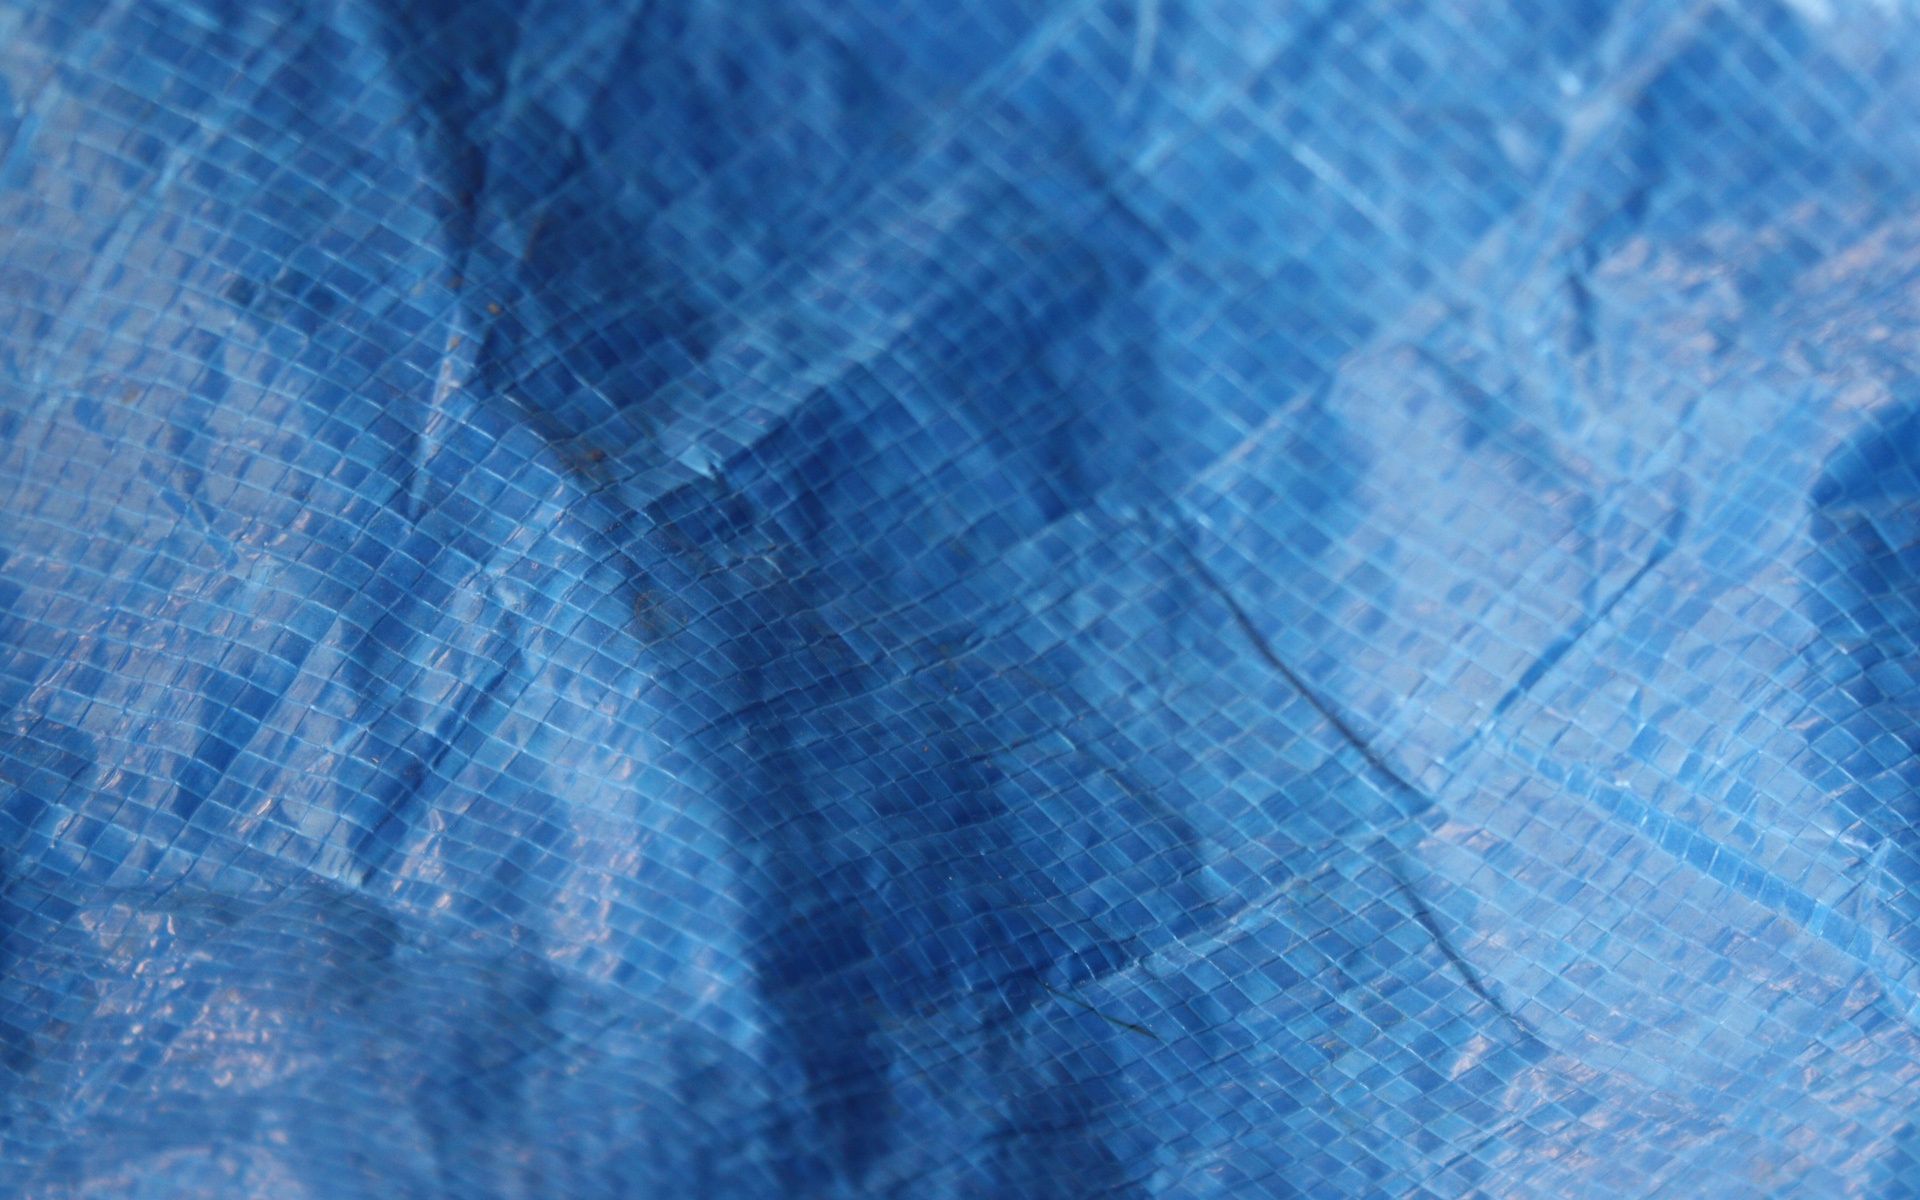 blue plastic faux alligator skin texture 1920x1200 wallpaper download 1920x1200